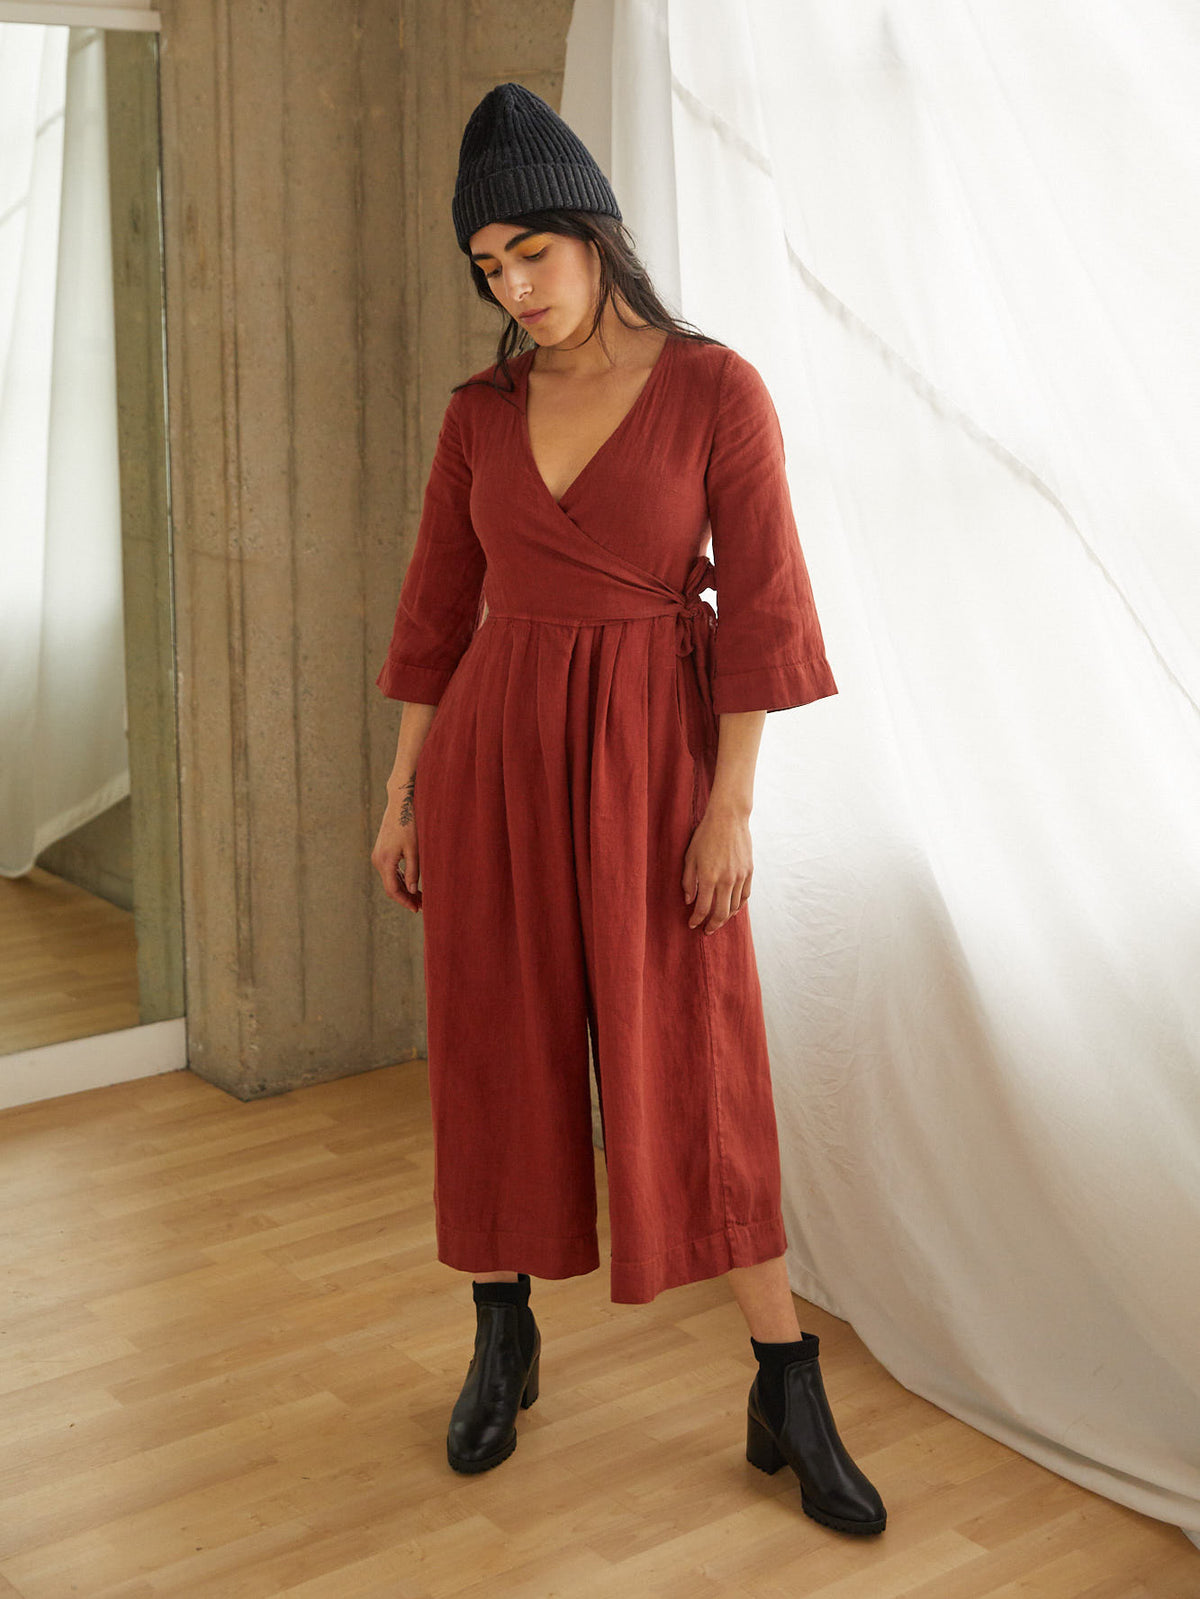 The Marigold JumpsuitJumpsuits - sugarcandymtn.com